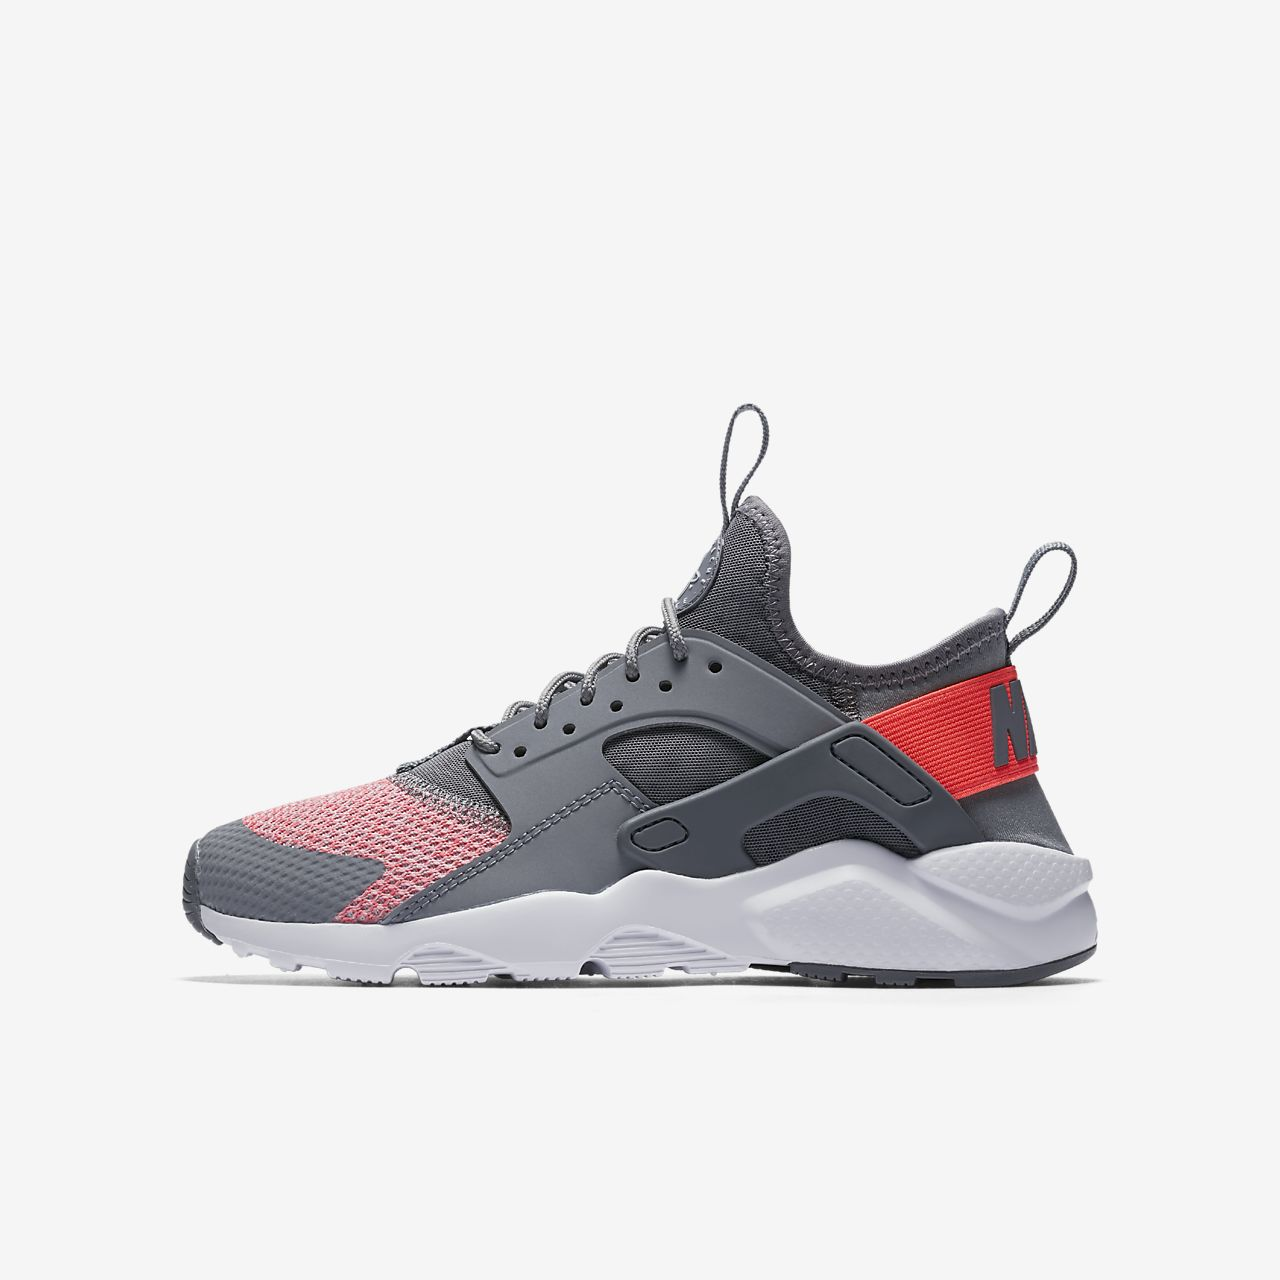 nike air huarache ultra men's black nz